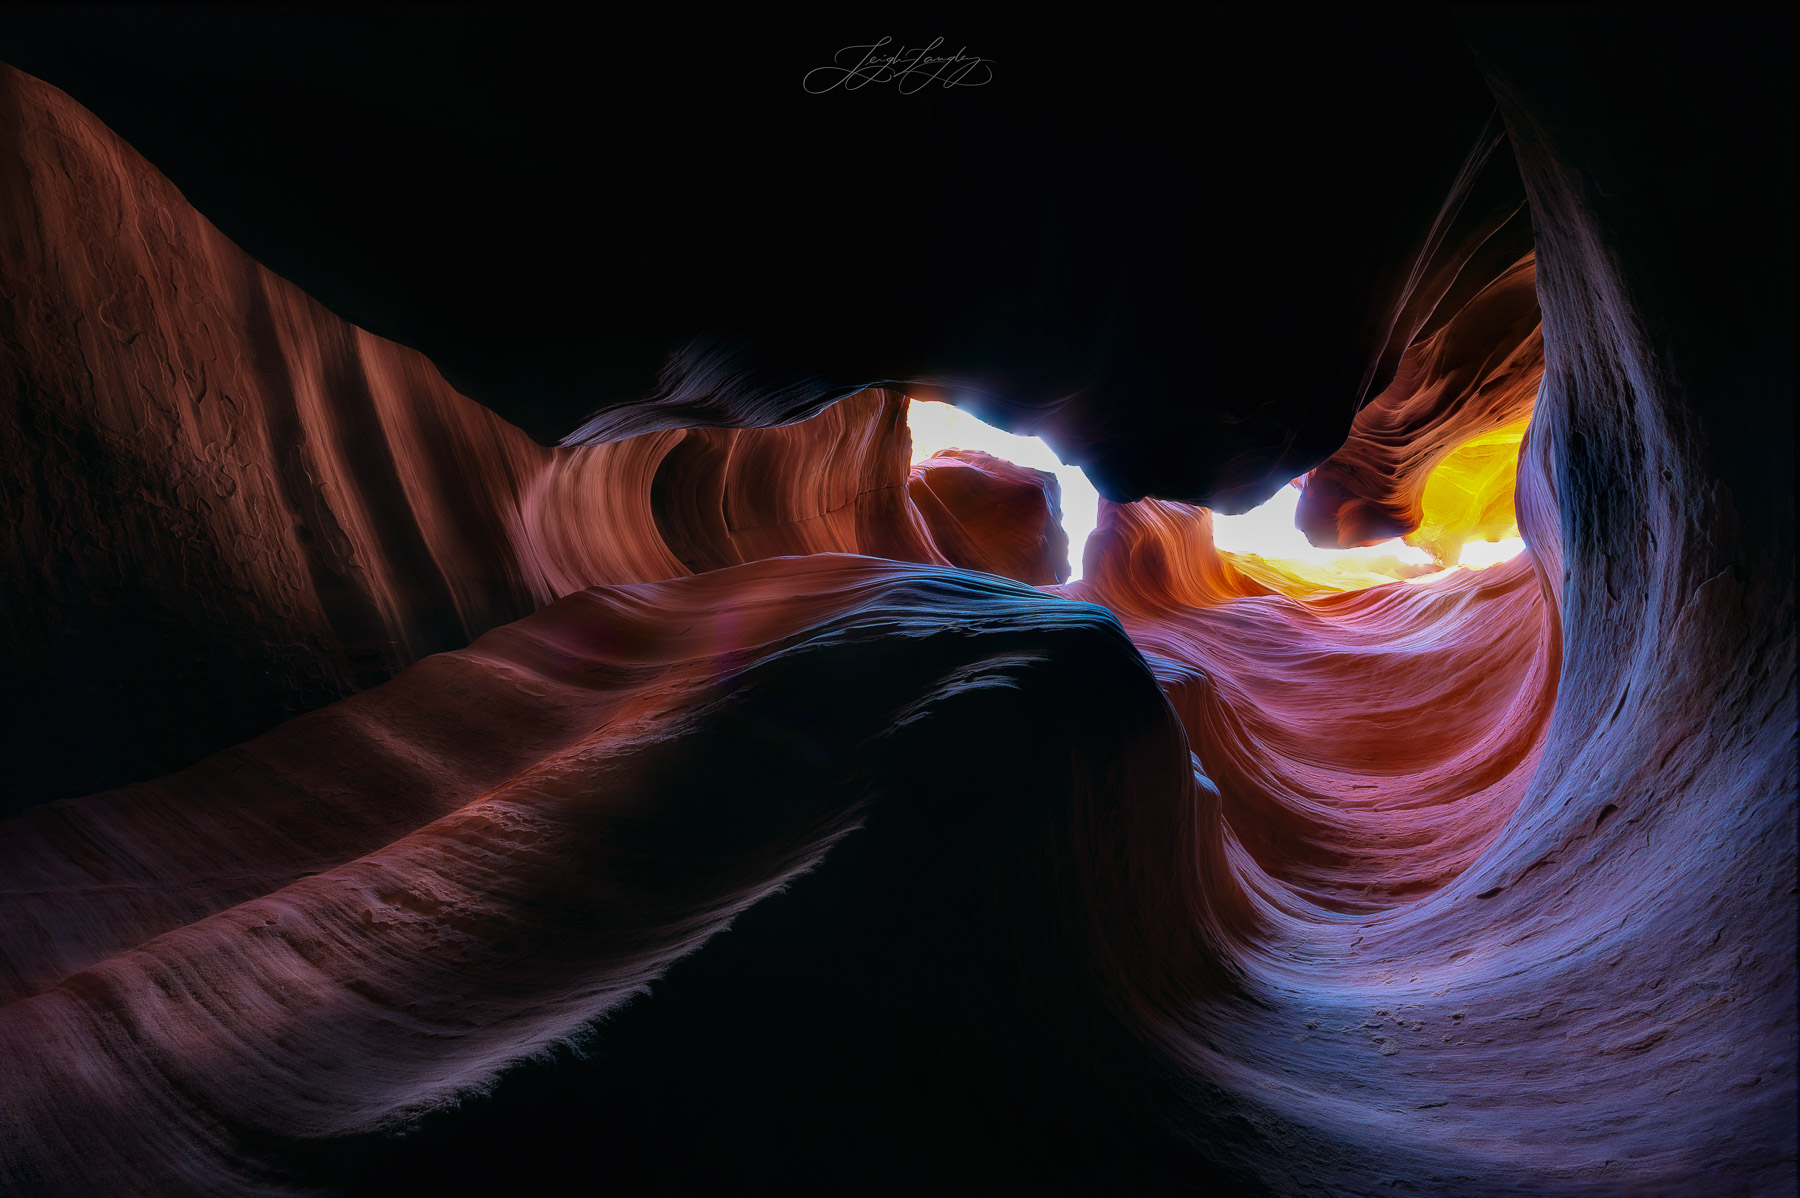 This was taken in Arizona. It is NOT from Antelope Canyon. They had banned photography for a while. I loved the play of different...